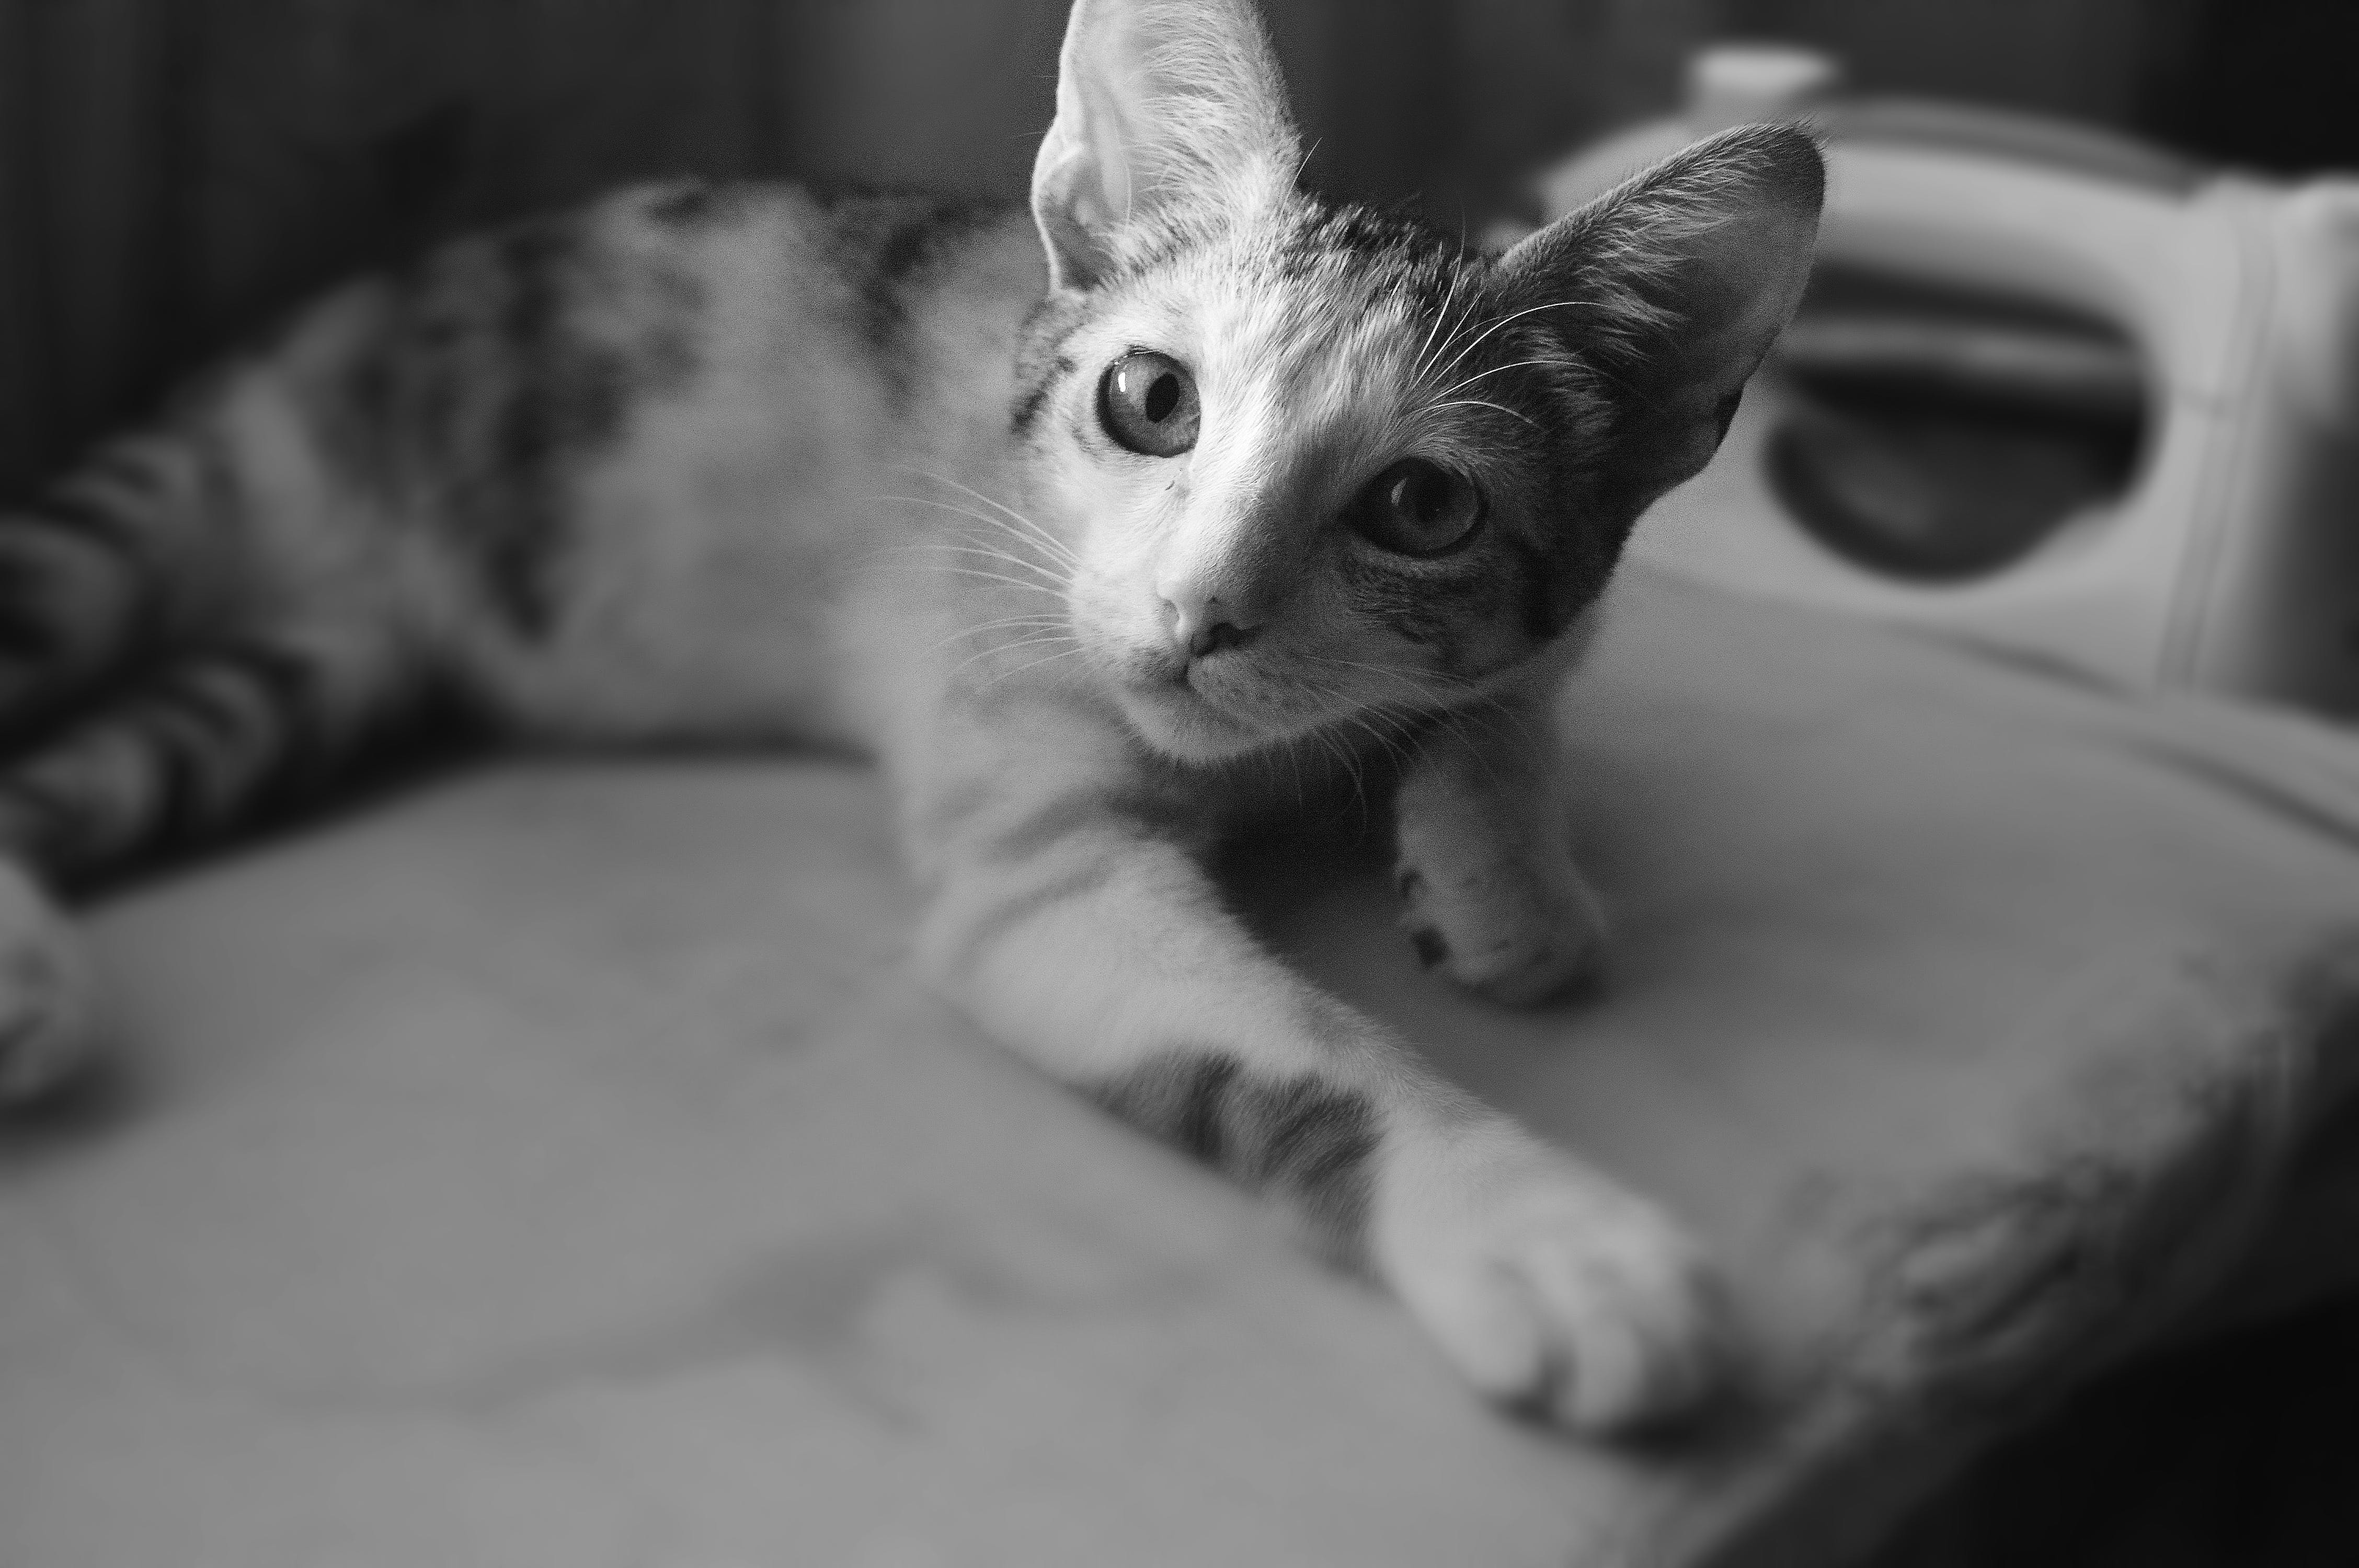 Black and White Photo of Cat